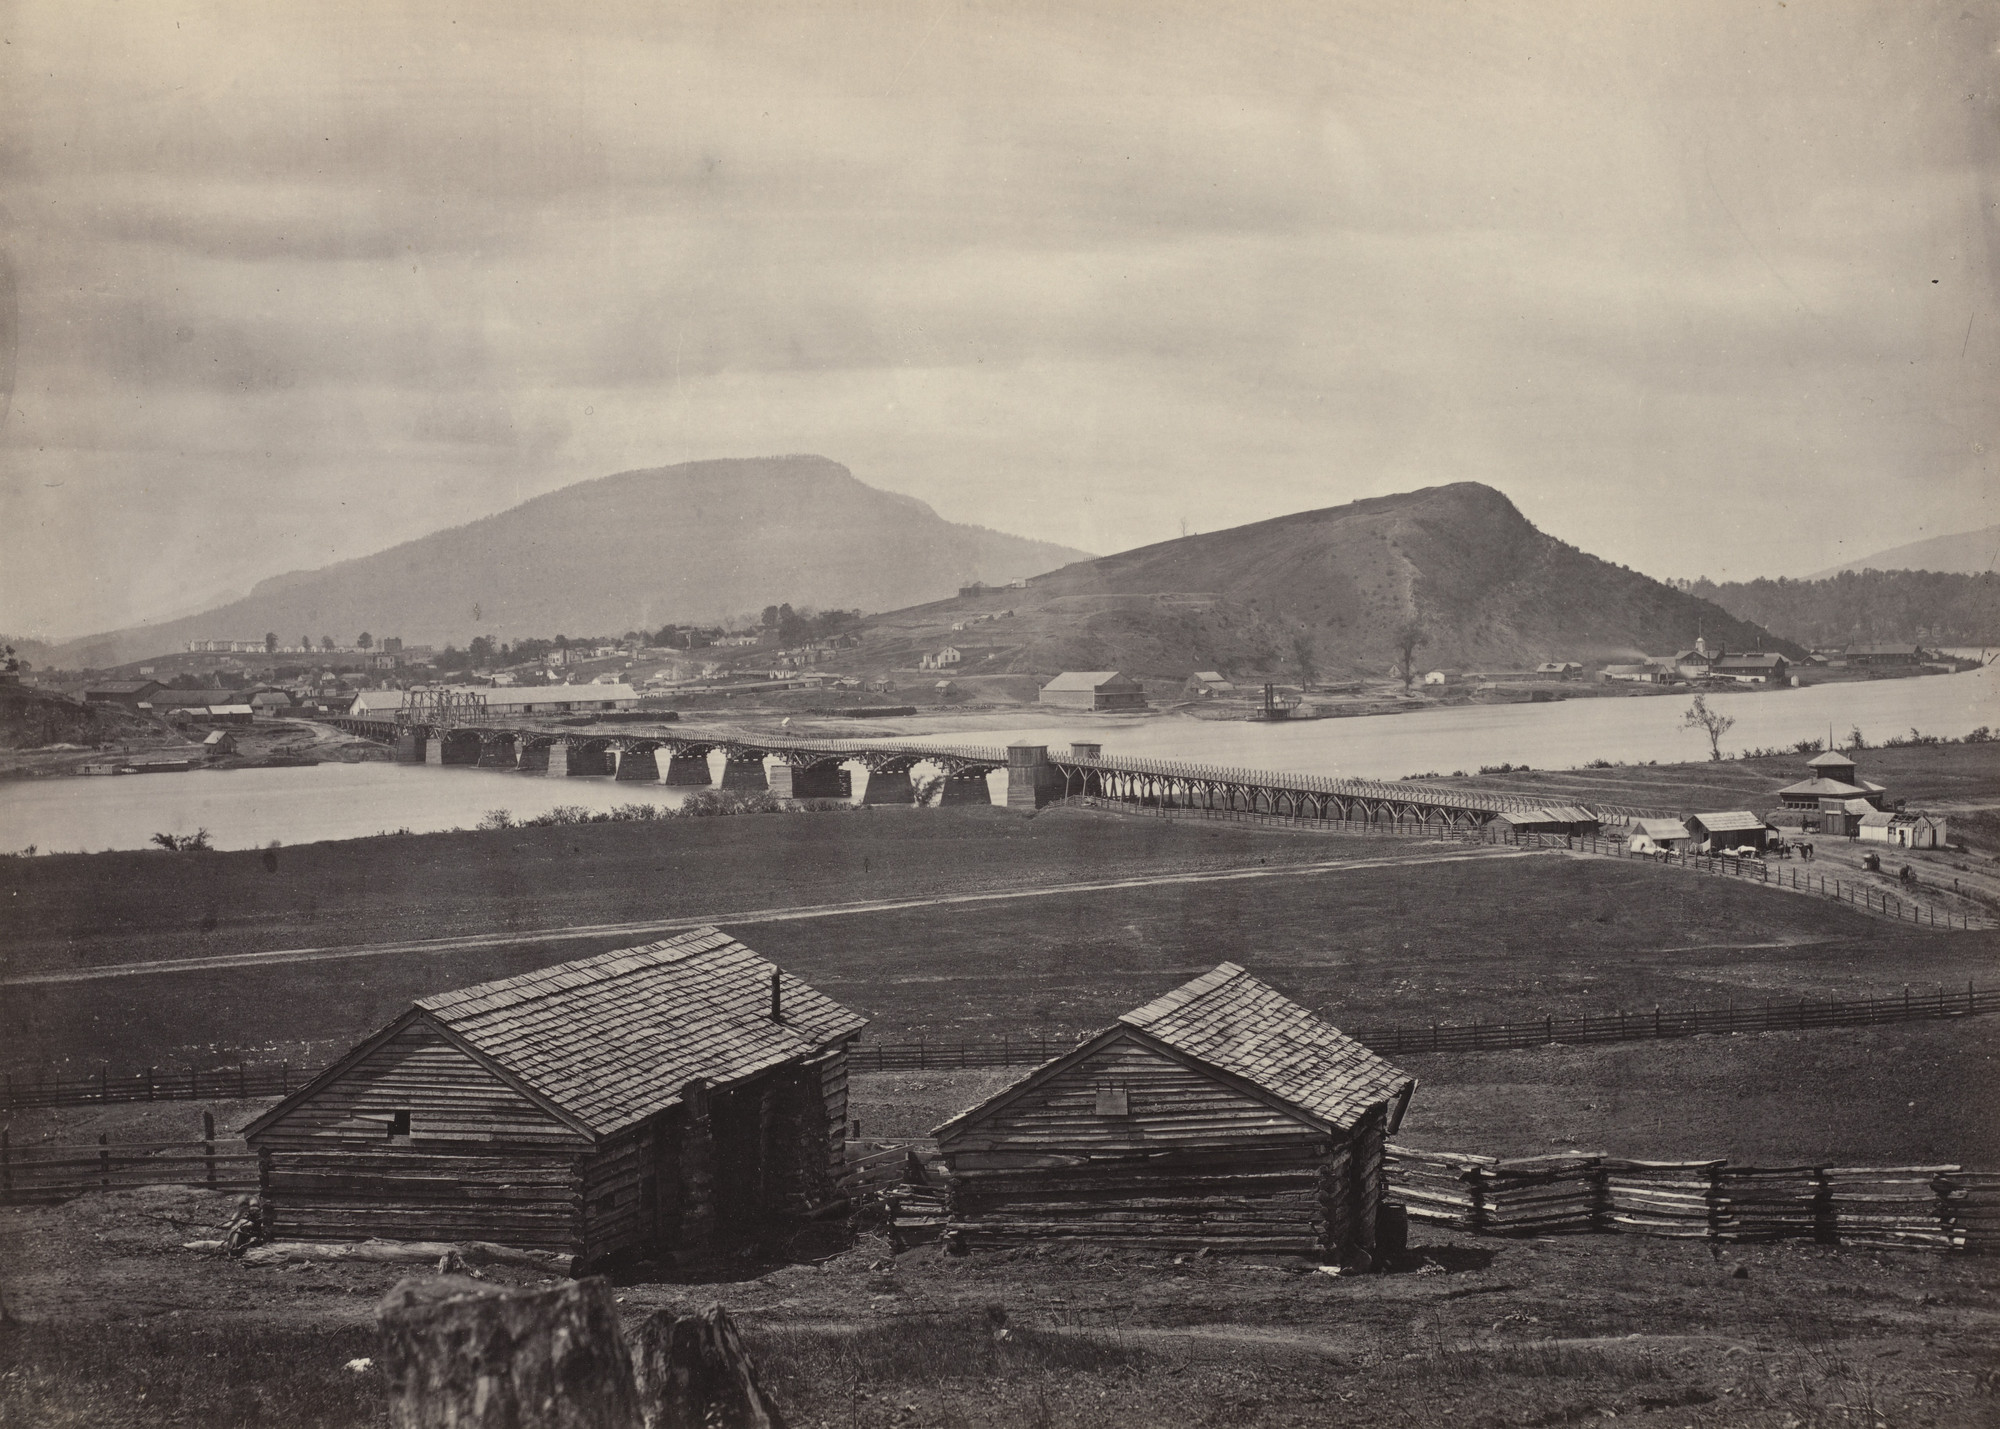 George Barnard. Chattanooga, from the North from the album Photographic Views of Sherman's Campaign. 1864-65